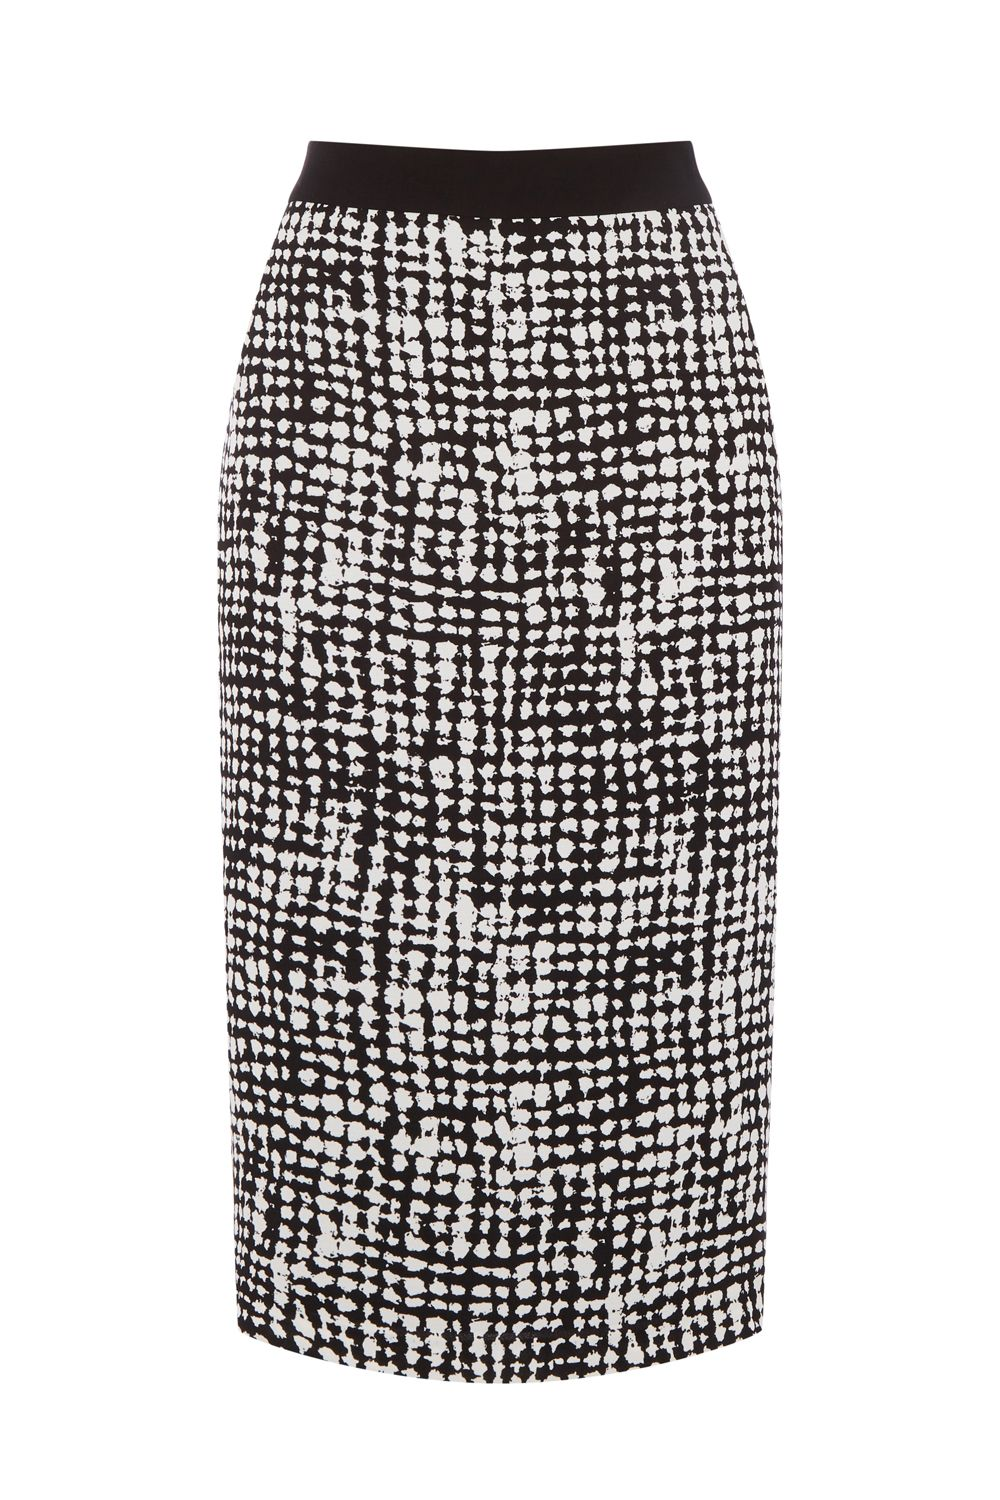 Oasis TEXTURE PRINT PENCIL SKIRT, Multi-Coloured